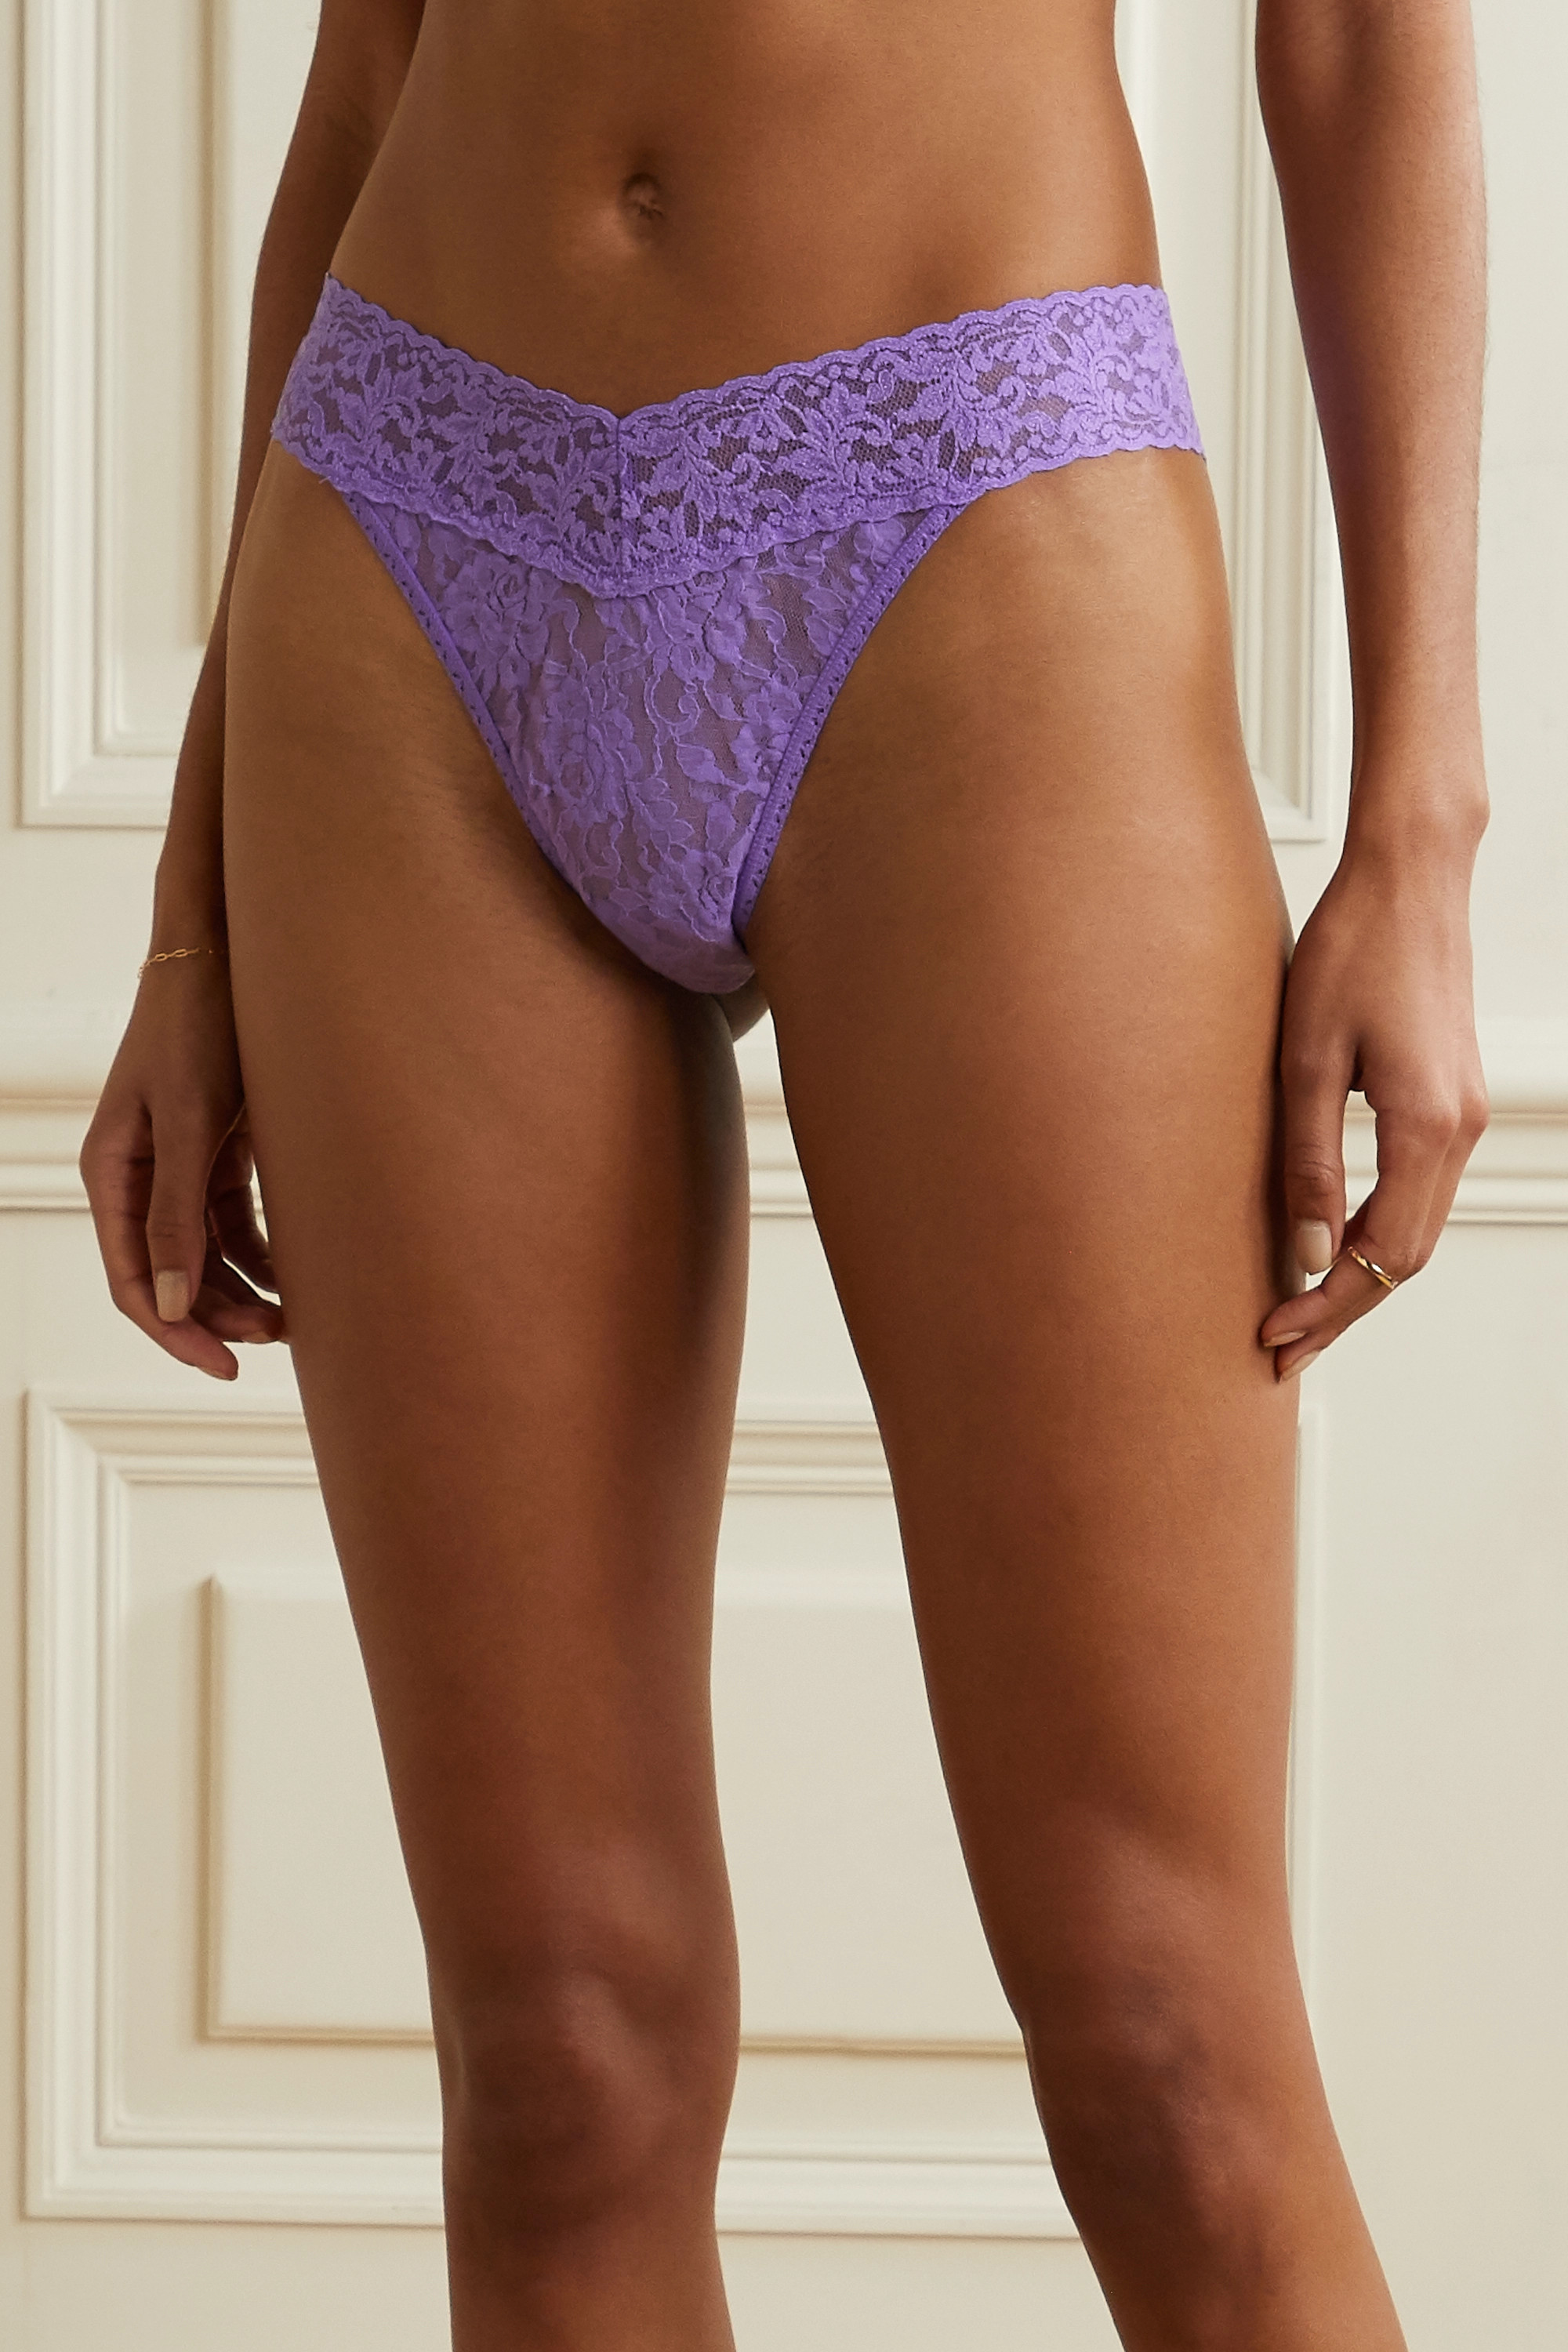 HANKY PANKY + NET SUSTAIN Signature set of three stretch-lace thongs